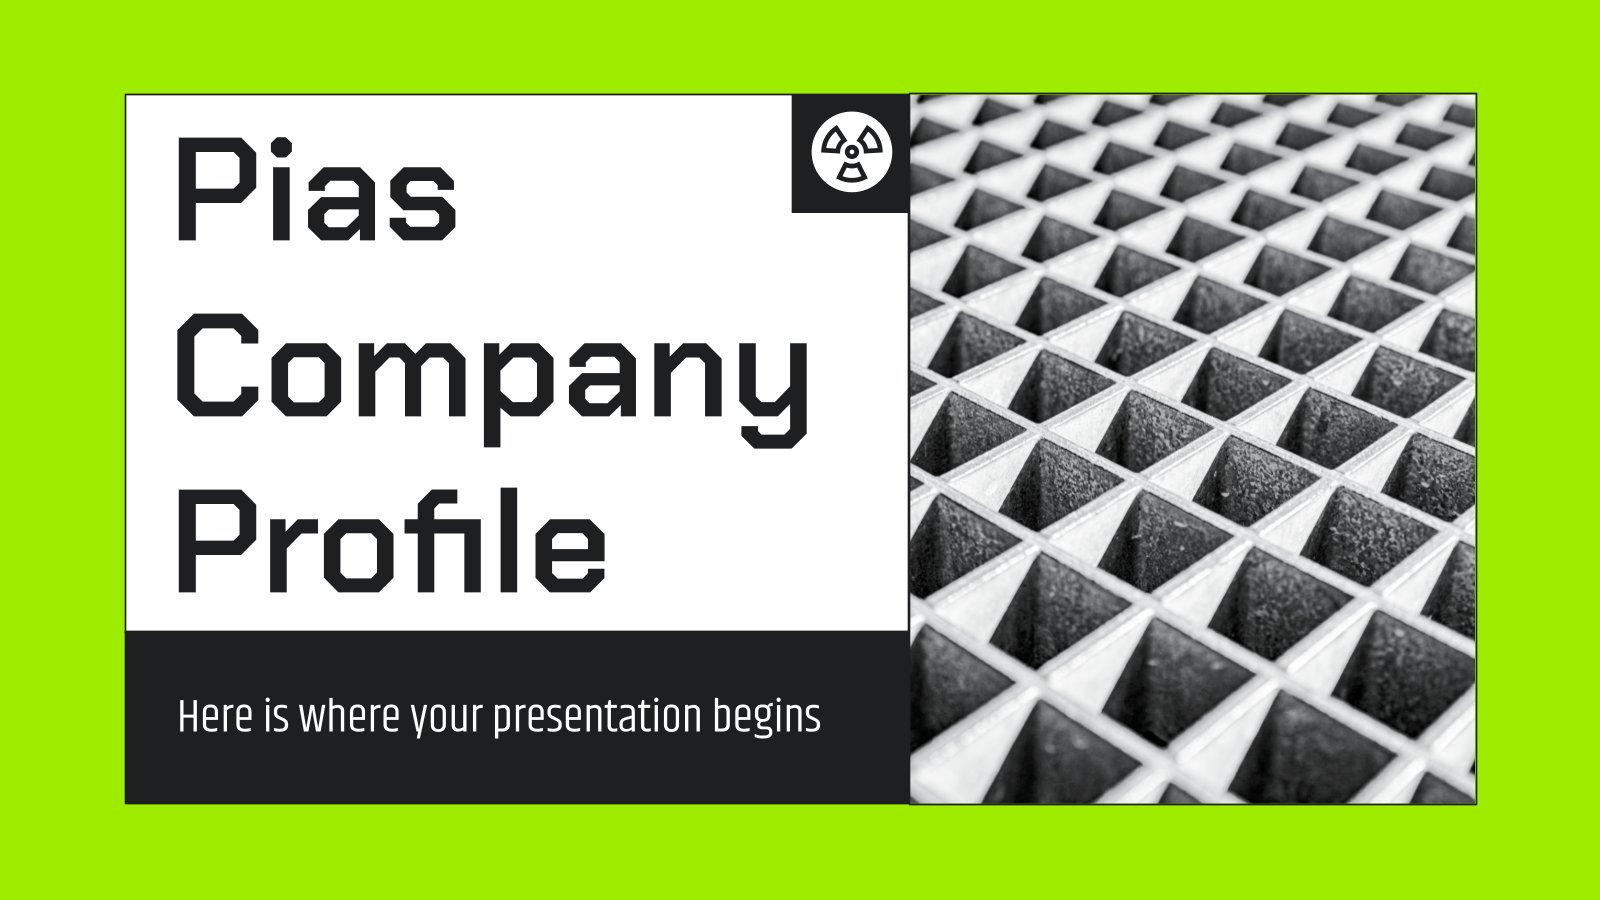 Pias Company Profile presentation template